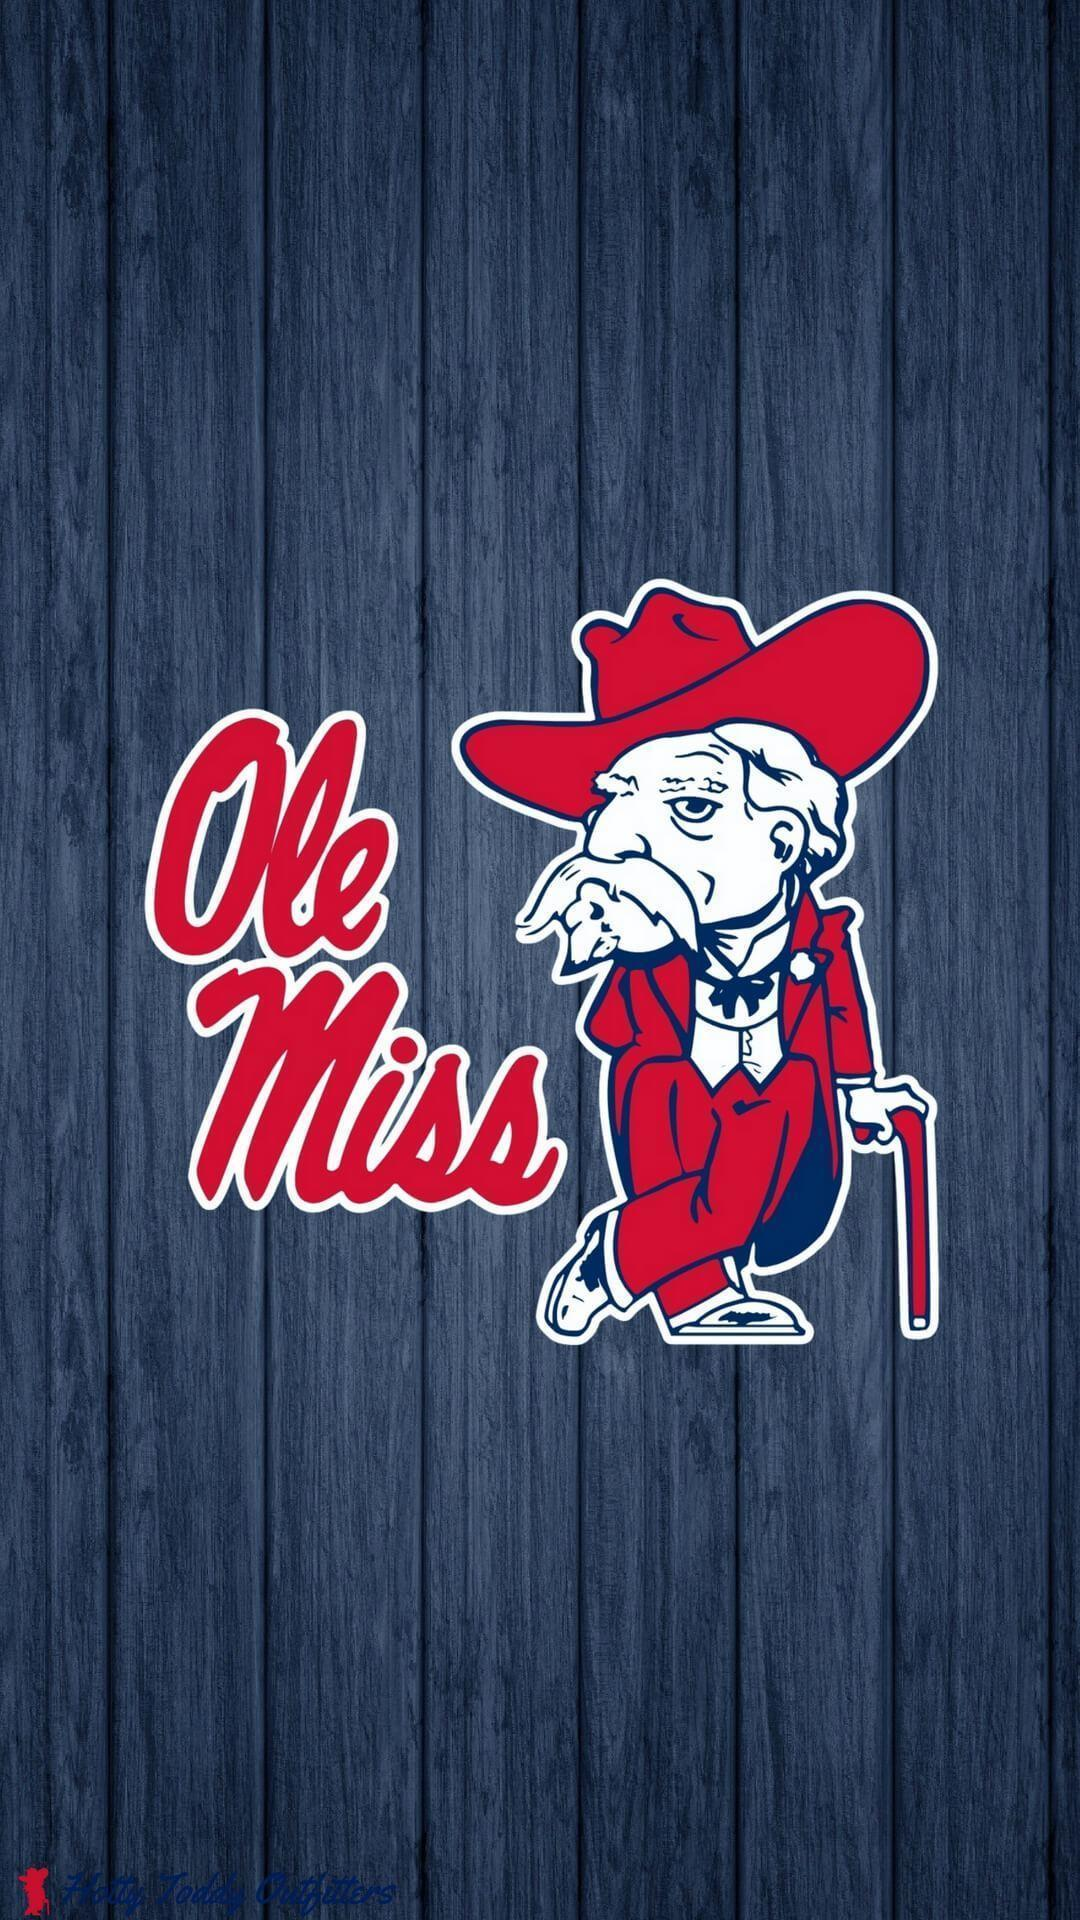 Ole miss wallpapers wallpaper cave - Ole miss wallpaper for iphone ...